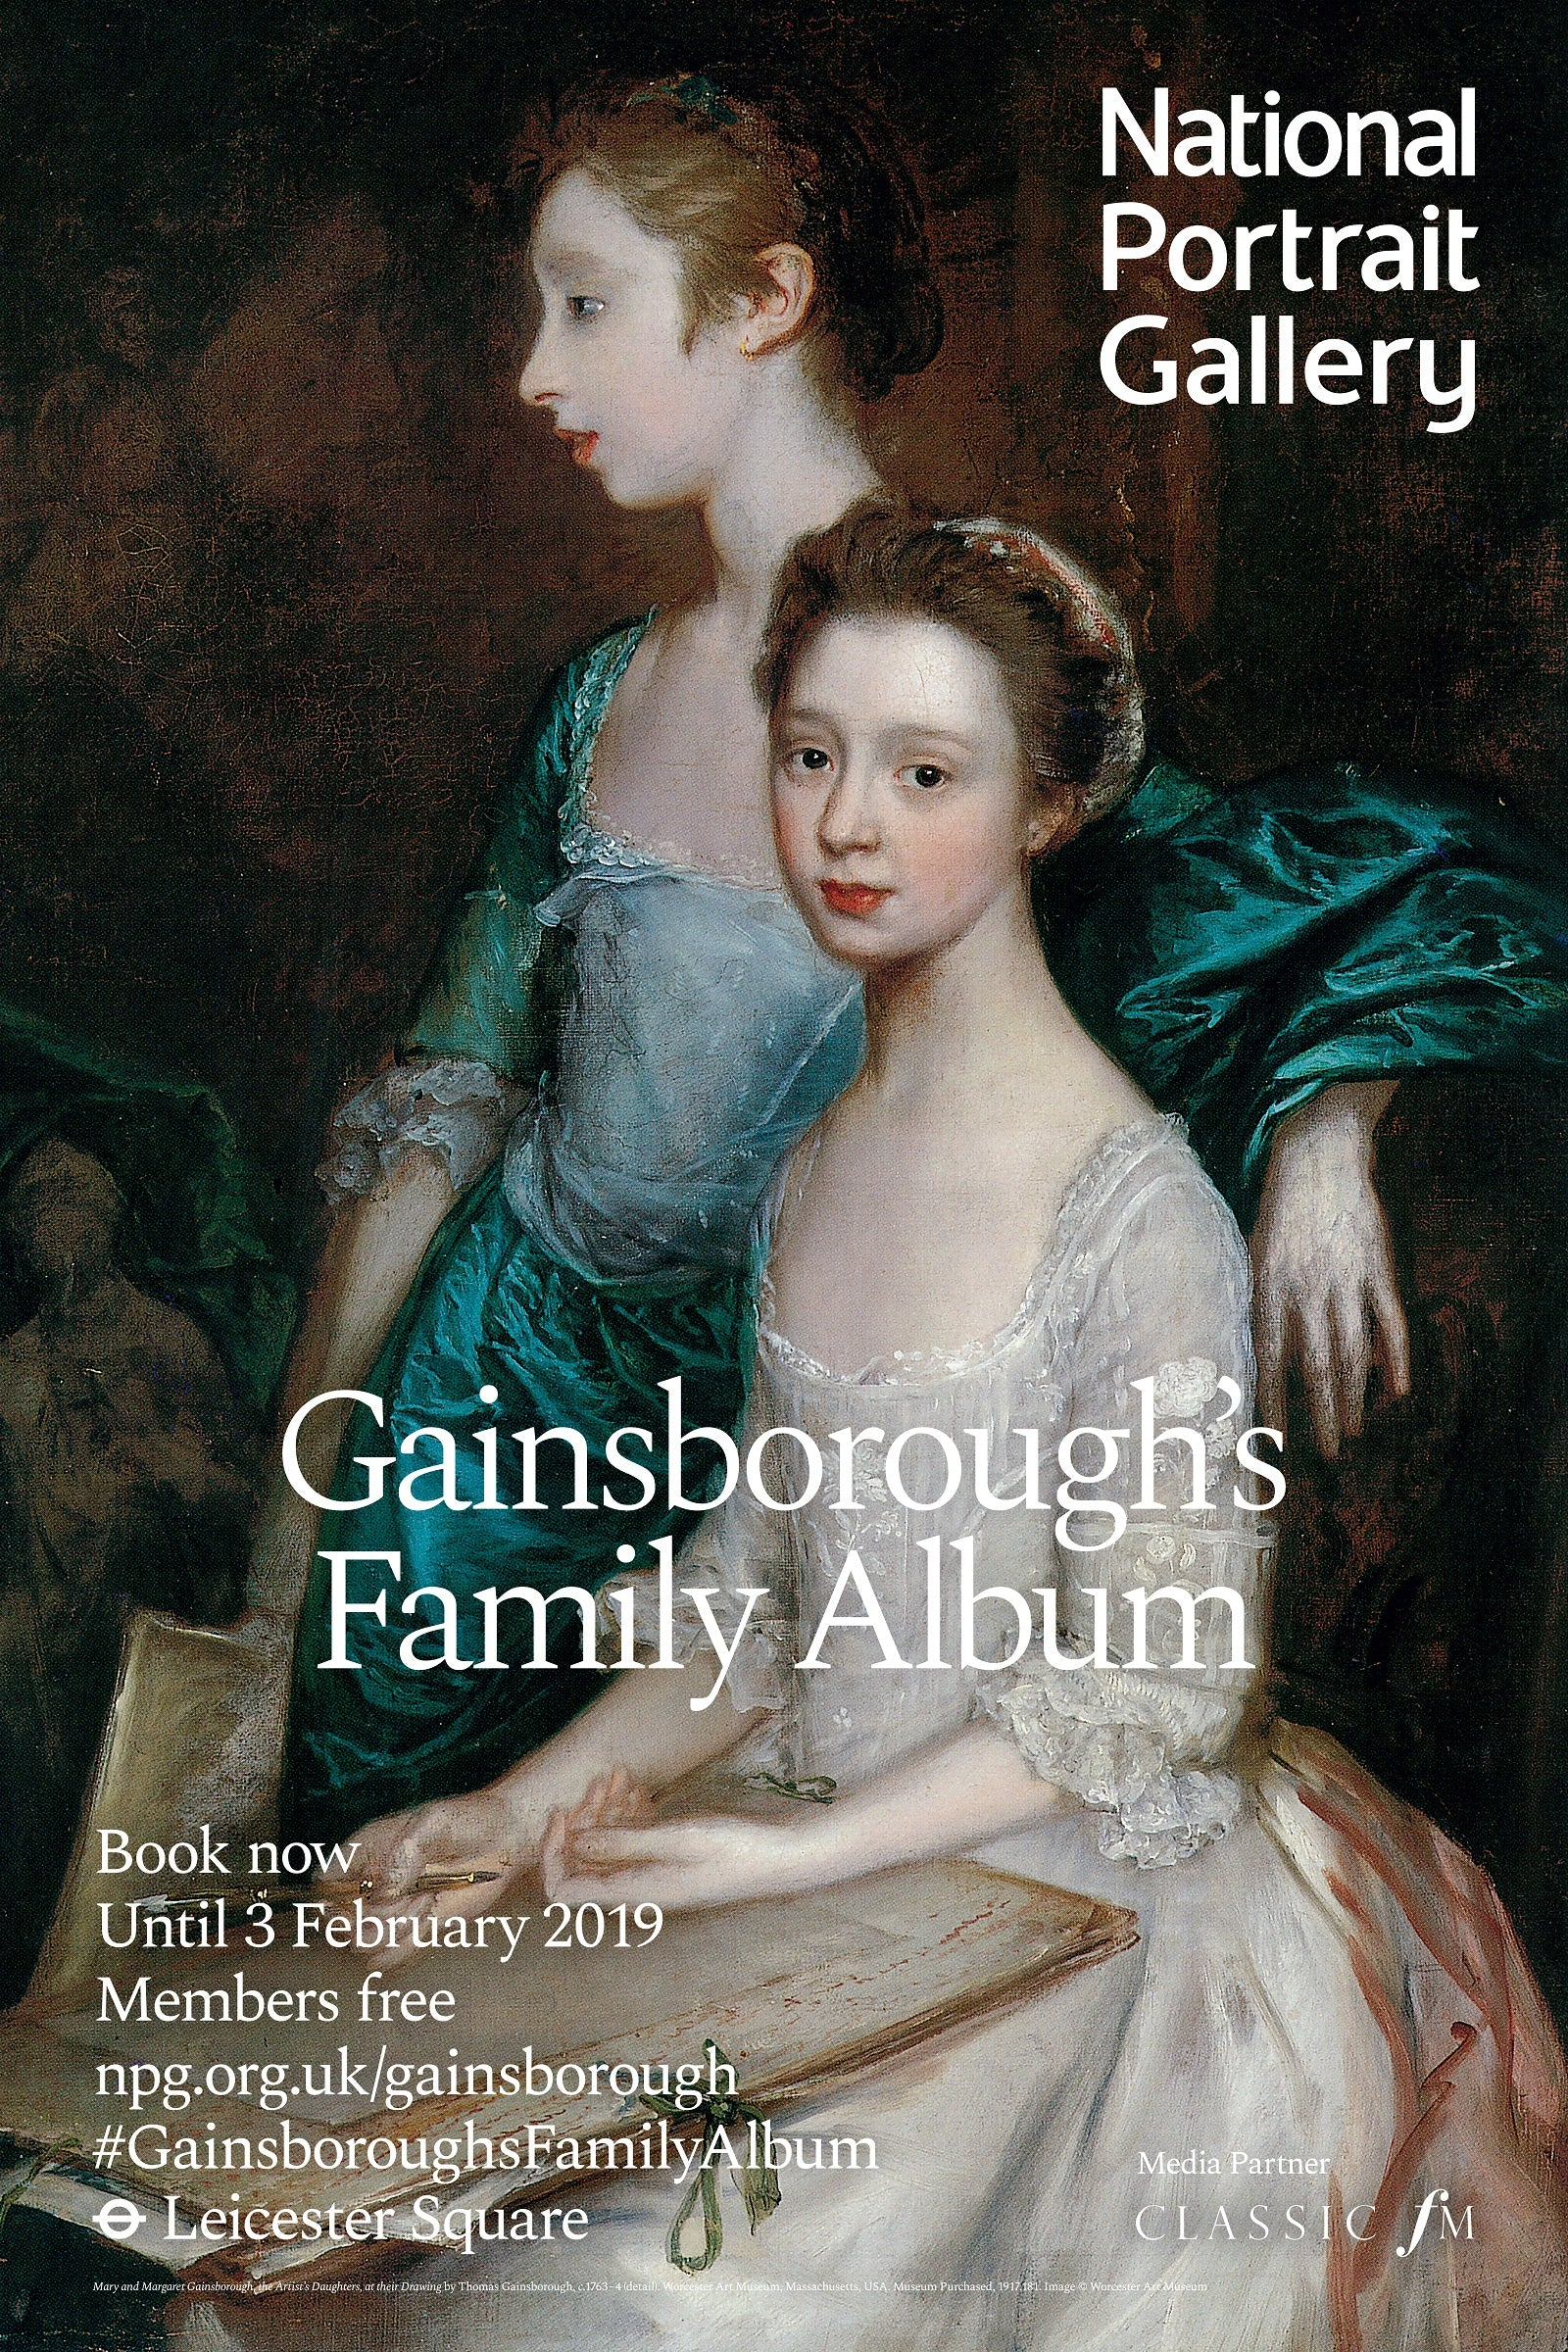 Gainsborough's Family Album Exhibition Poster